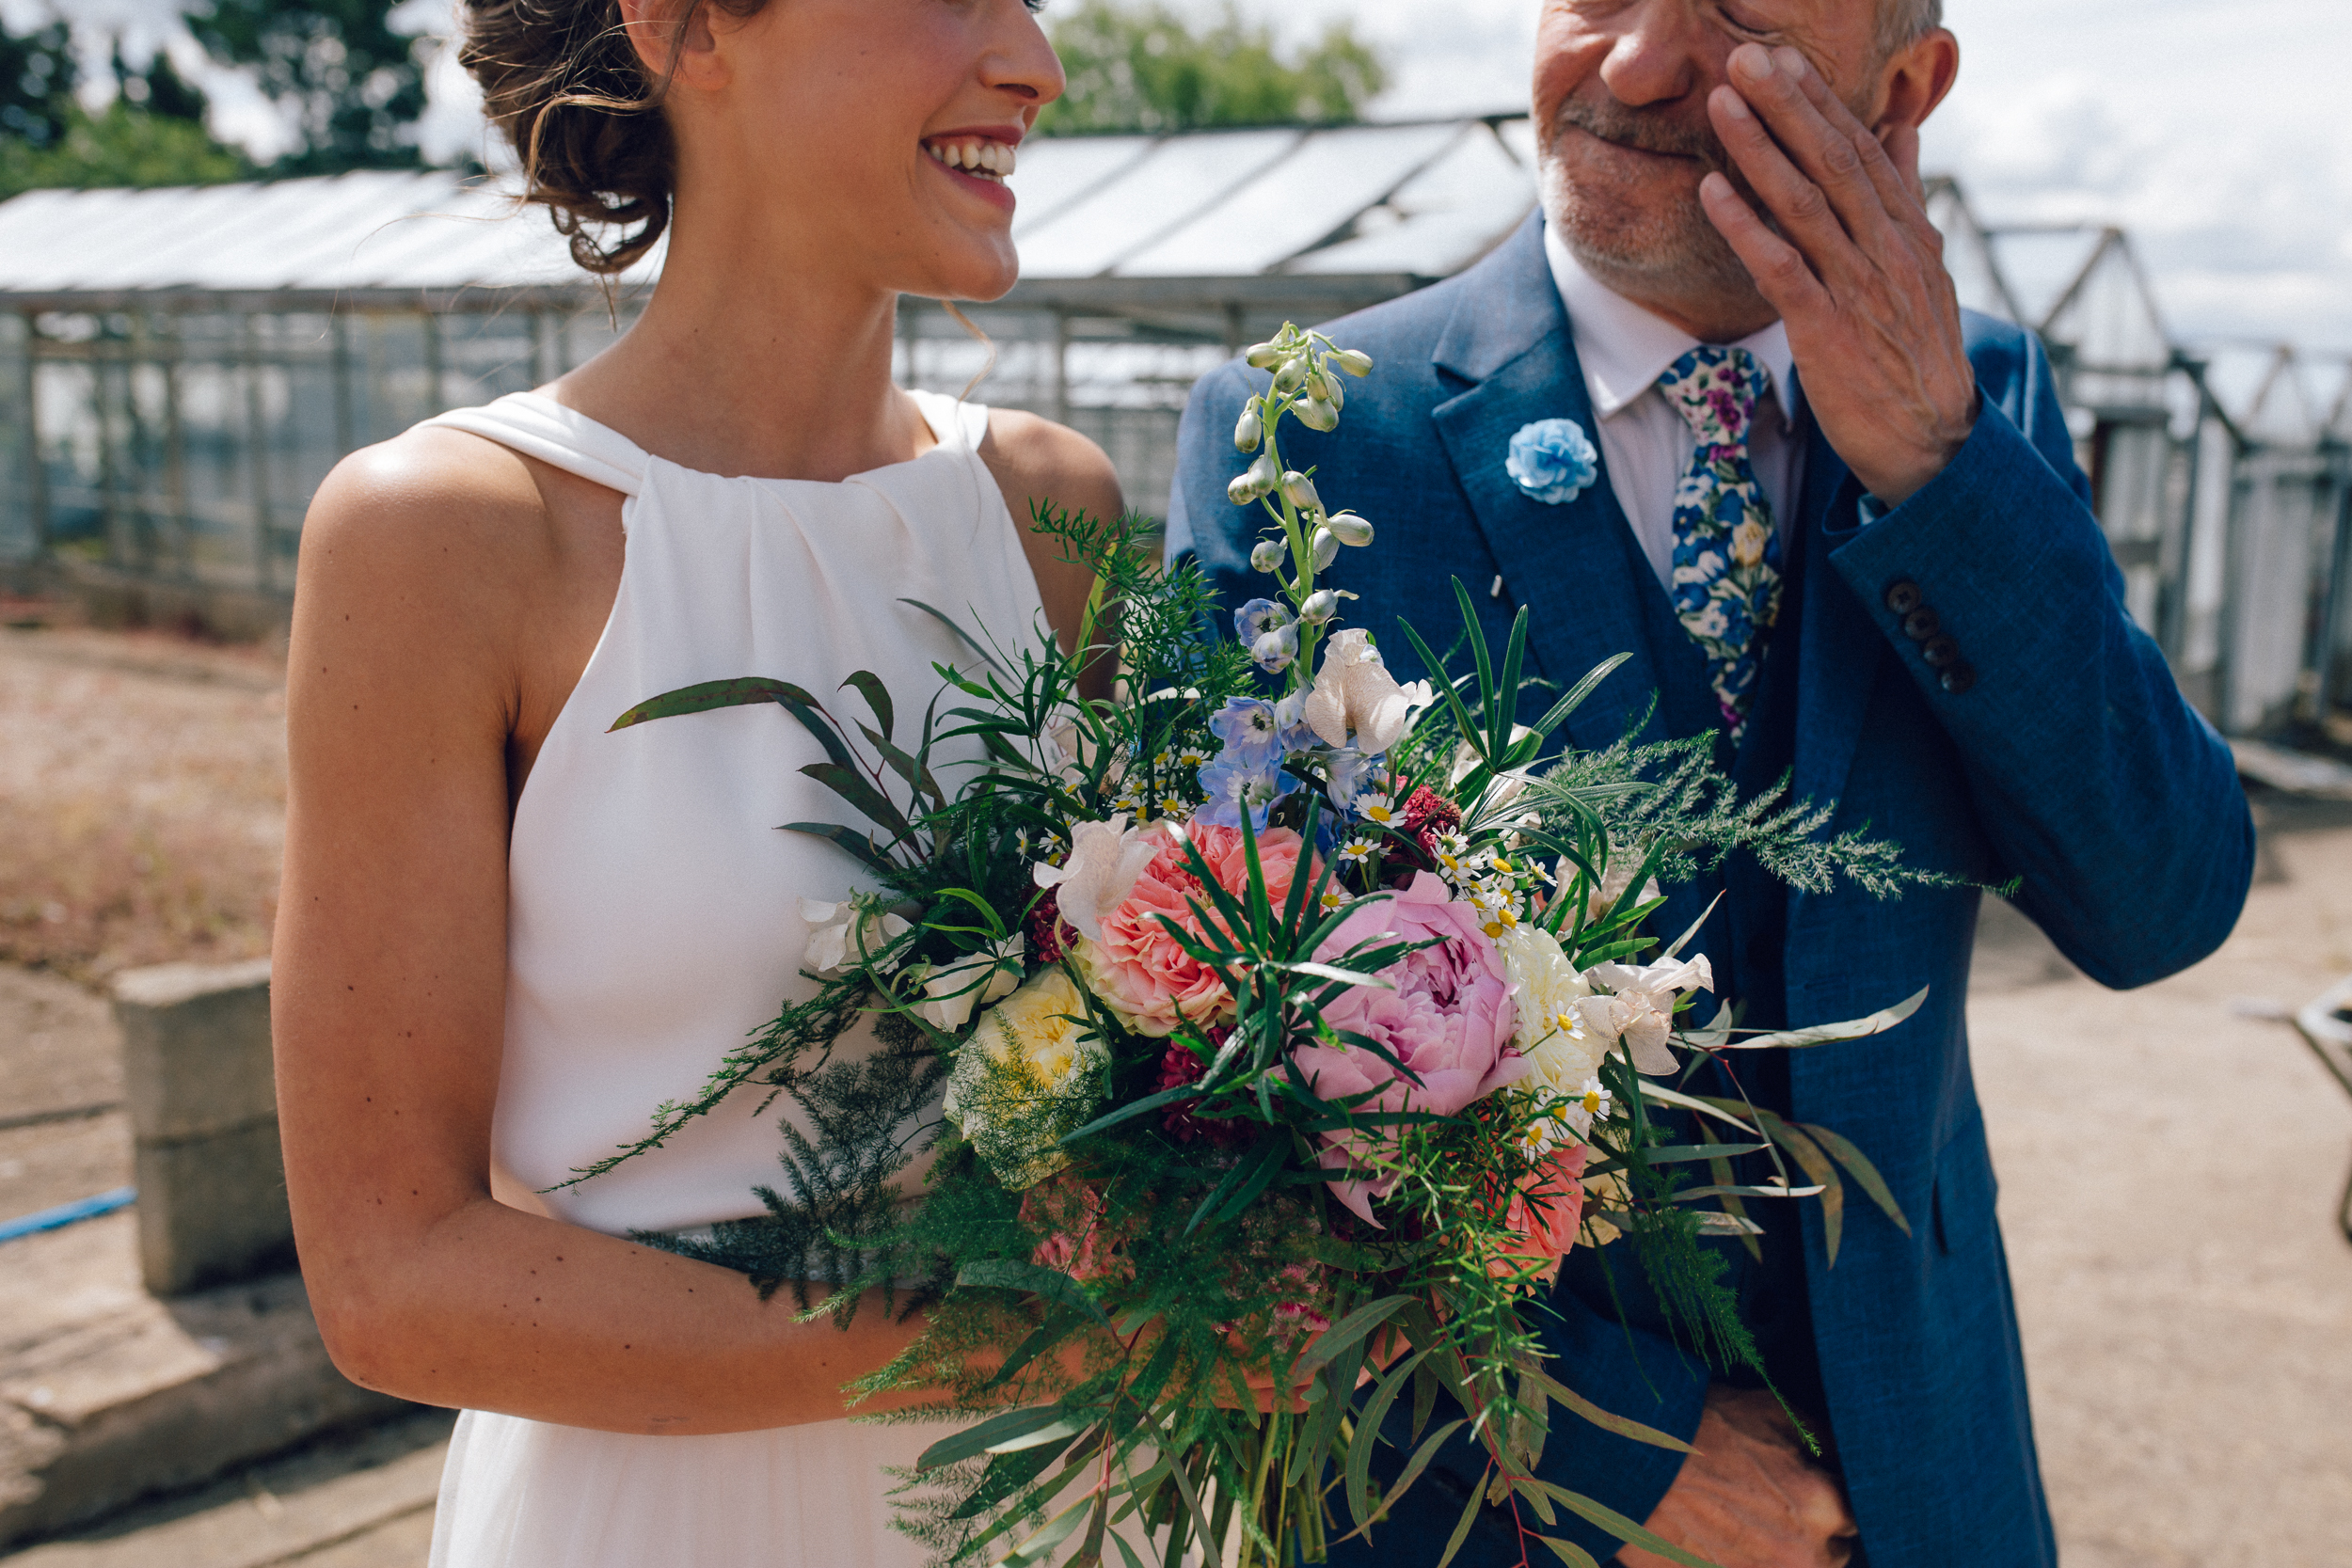 WEDDINGS - RELAXED, CREATIVE, COLLABORATIVE UNCONVENTIONAL WEDDING PHOTOGRAPHY